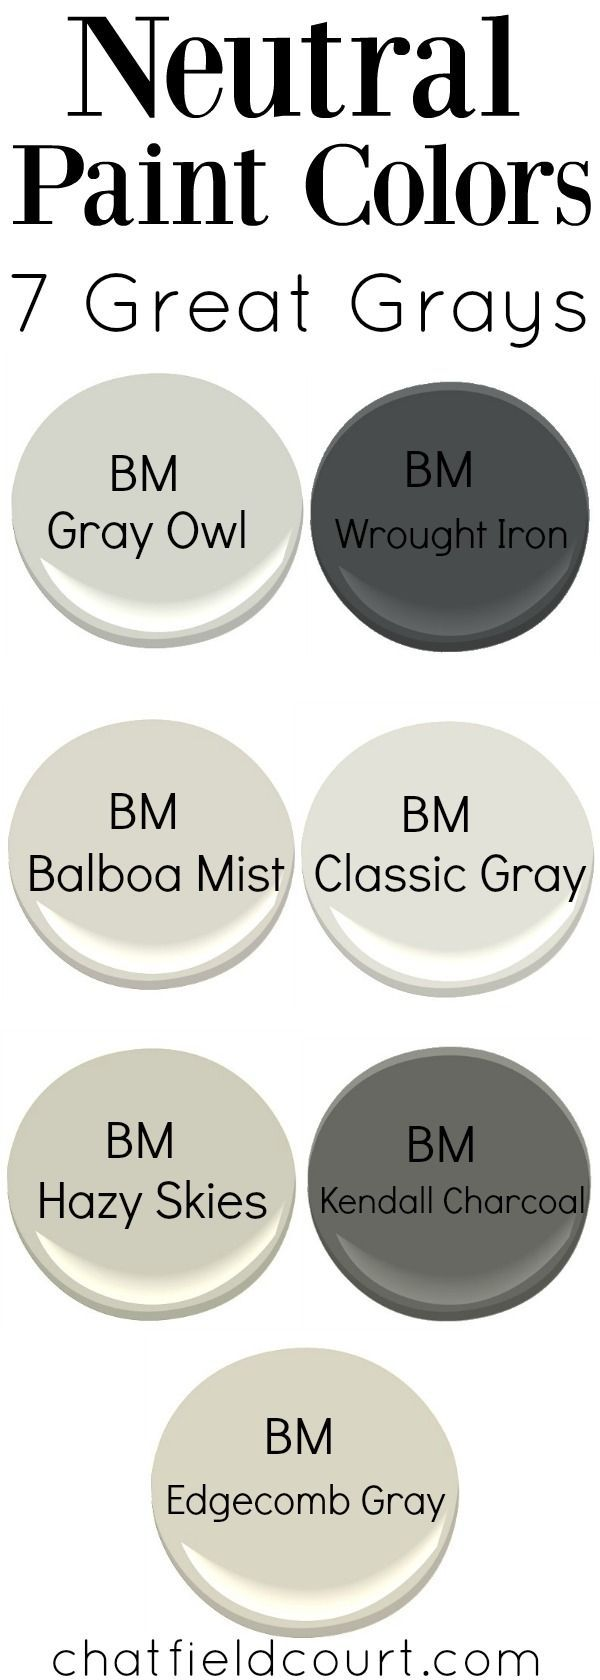 There S So Many Great Grays To Choose From But Here Are My 7 Of Favoritet Gray Paint Colors Benjamin Moore Chatfieldcourt